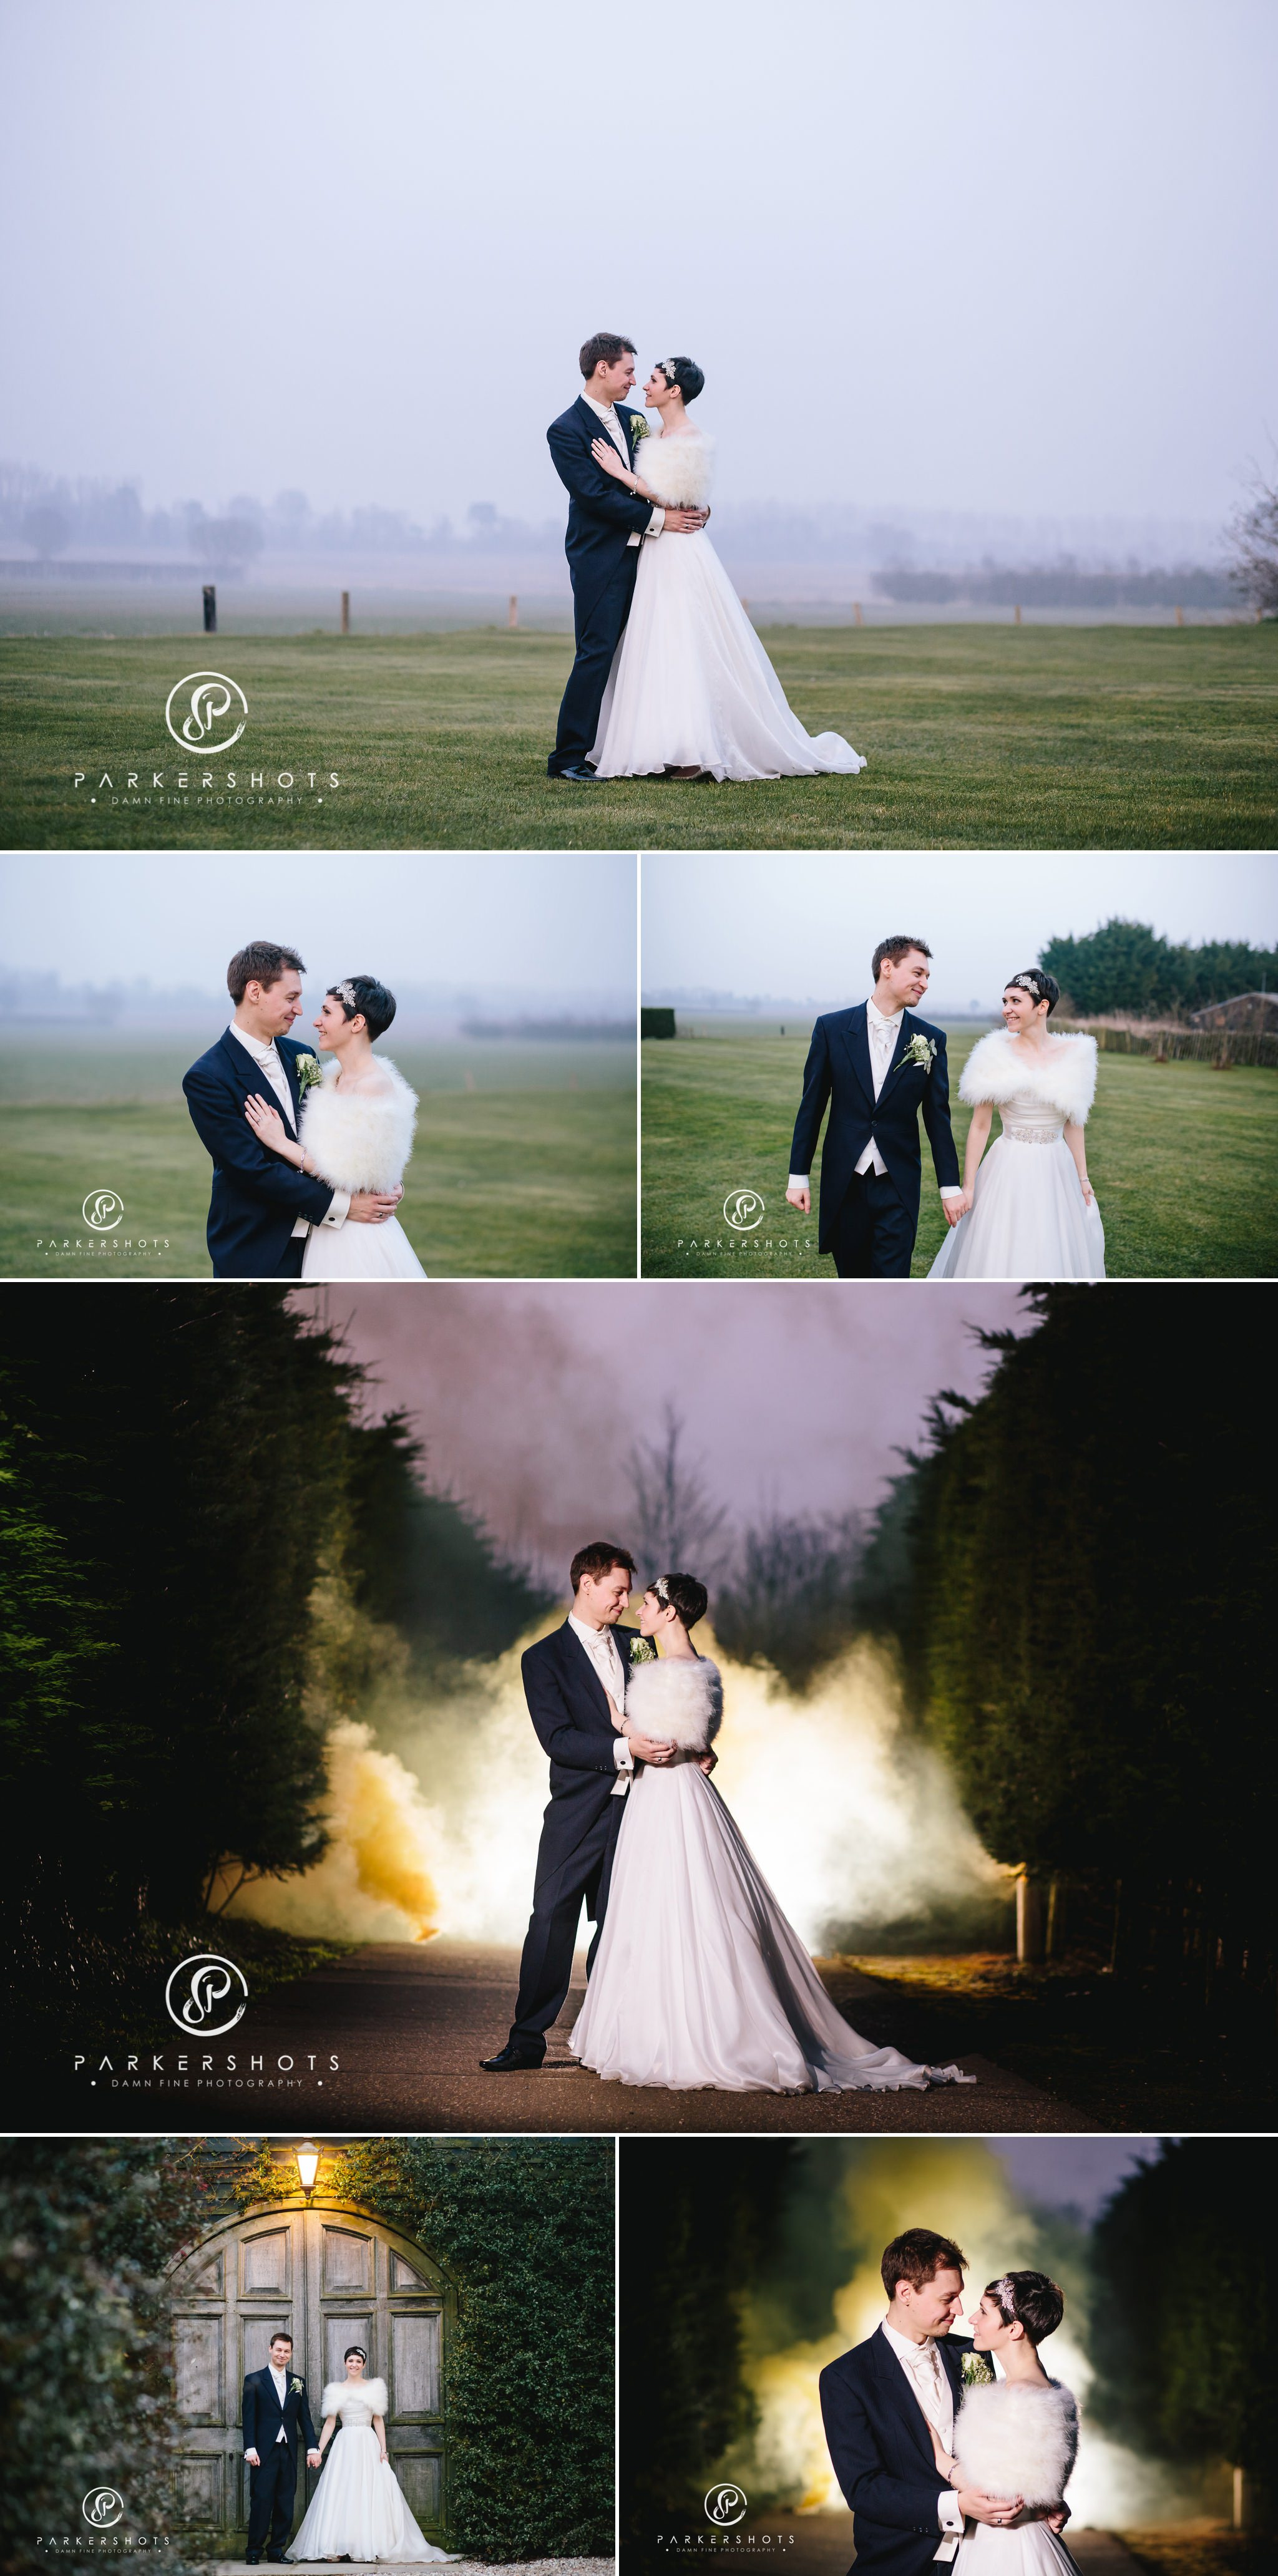 Portraits of bride and groom at Winters Barns in mist